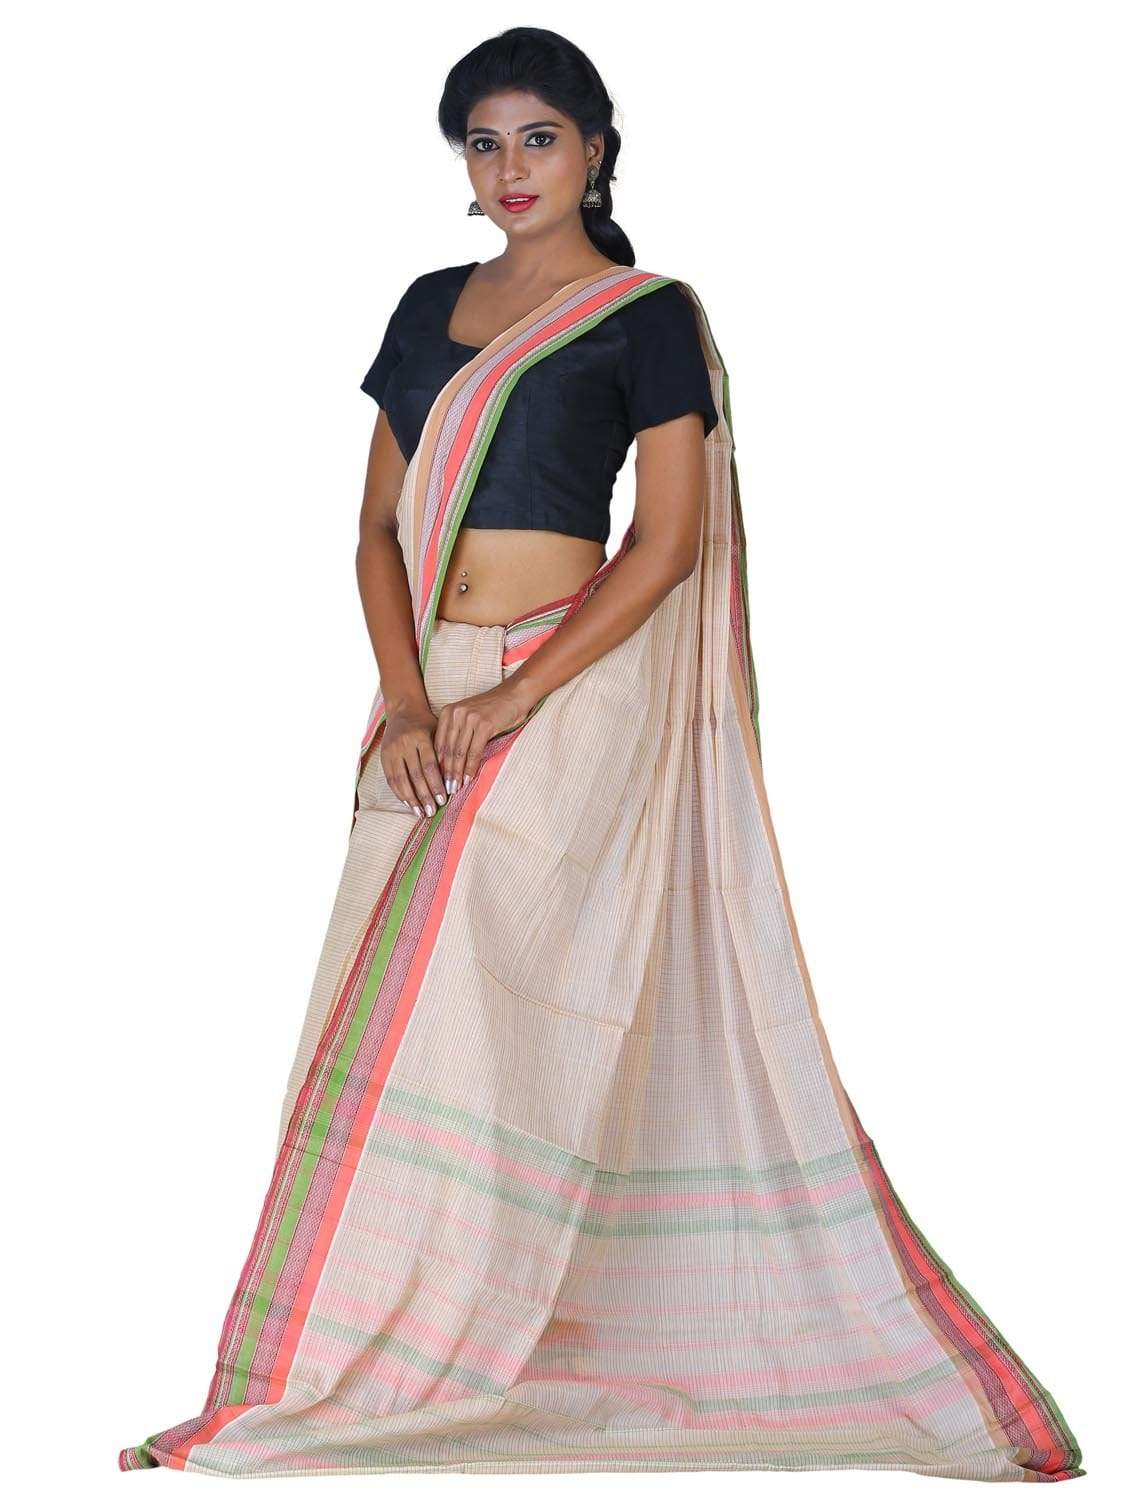 Cream Narayanpet Cotton Handloom Saree with Checks Design np0265